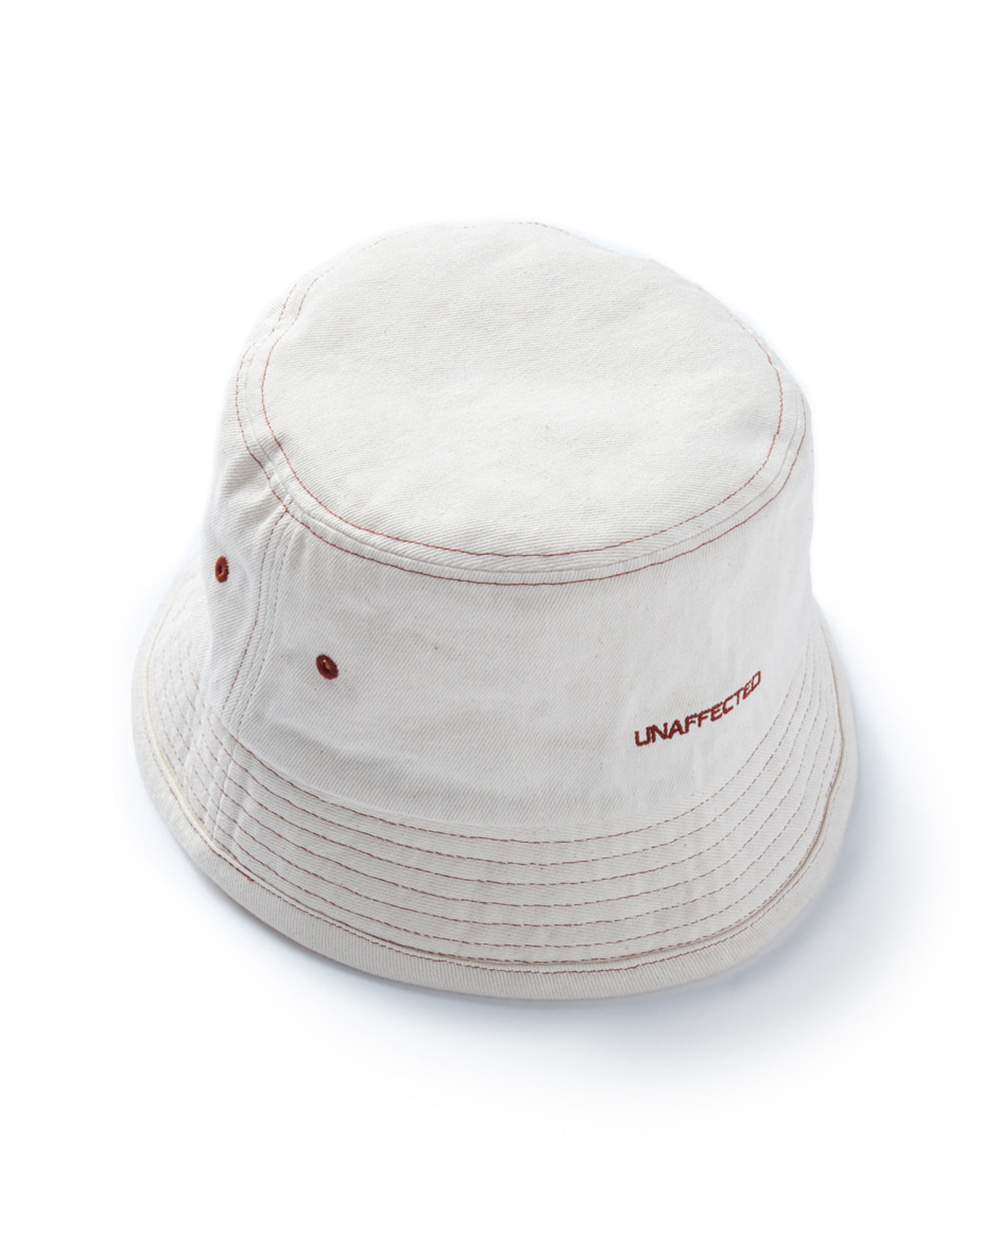 언어펙티드 LOGO BUCKET HAT (Ecru)